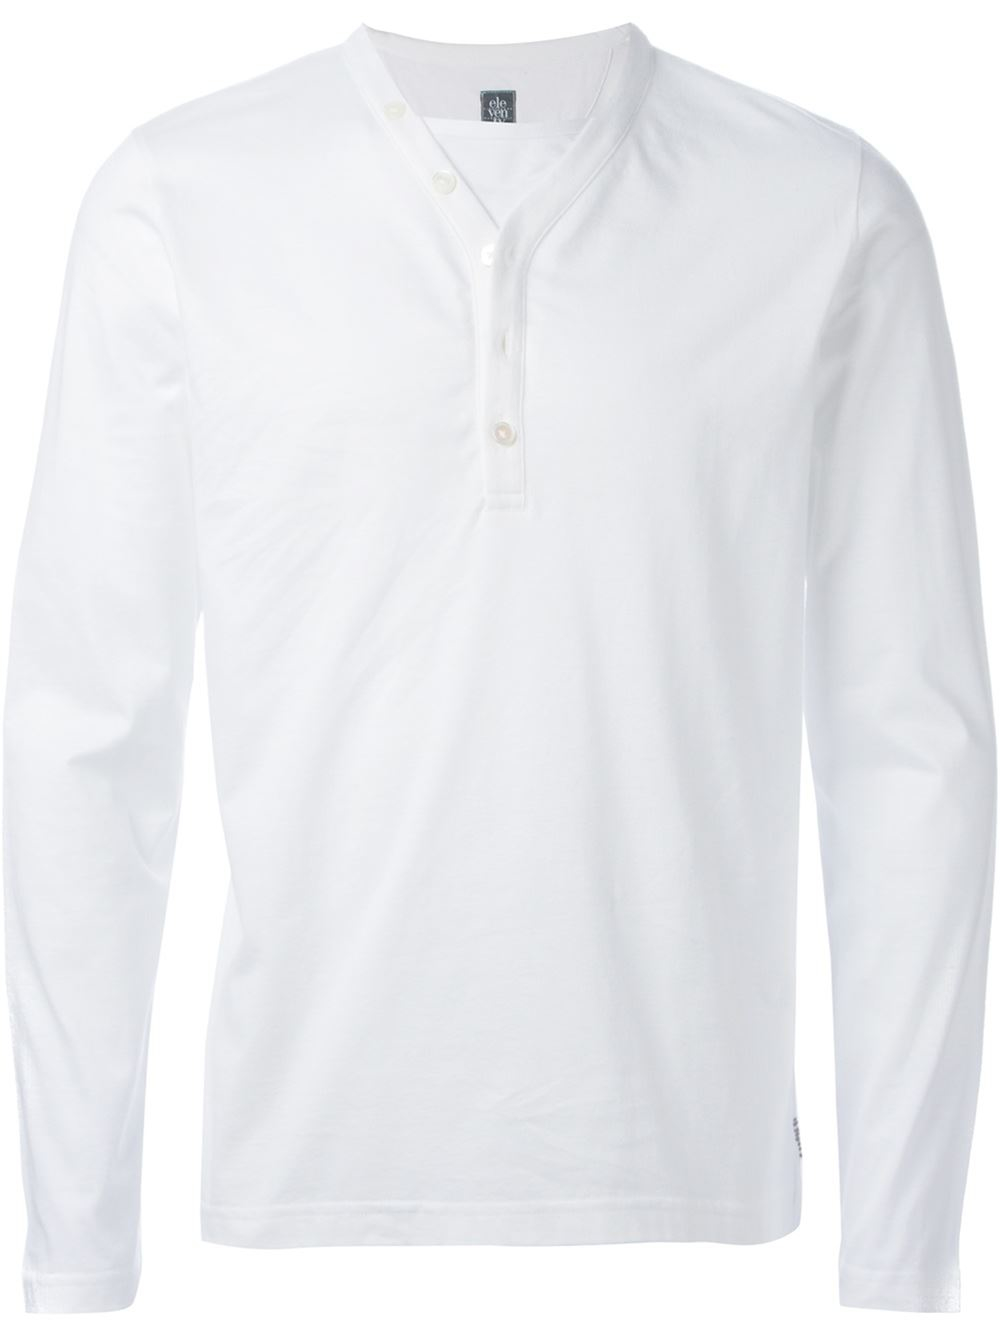 Eleventy long sleeve henley t shirt in white for men lyst Mens long sleeve white t shirt